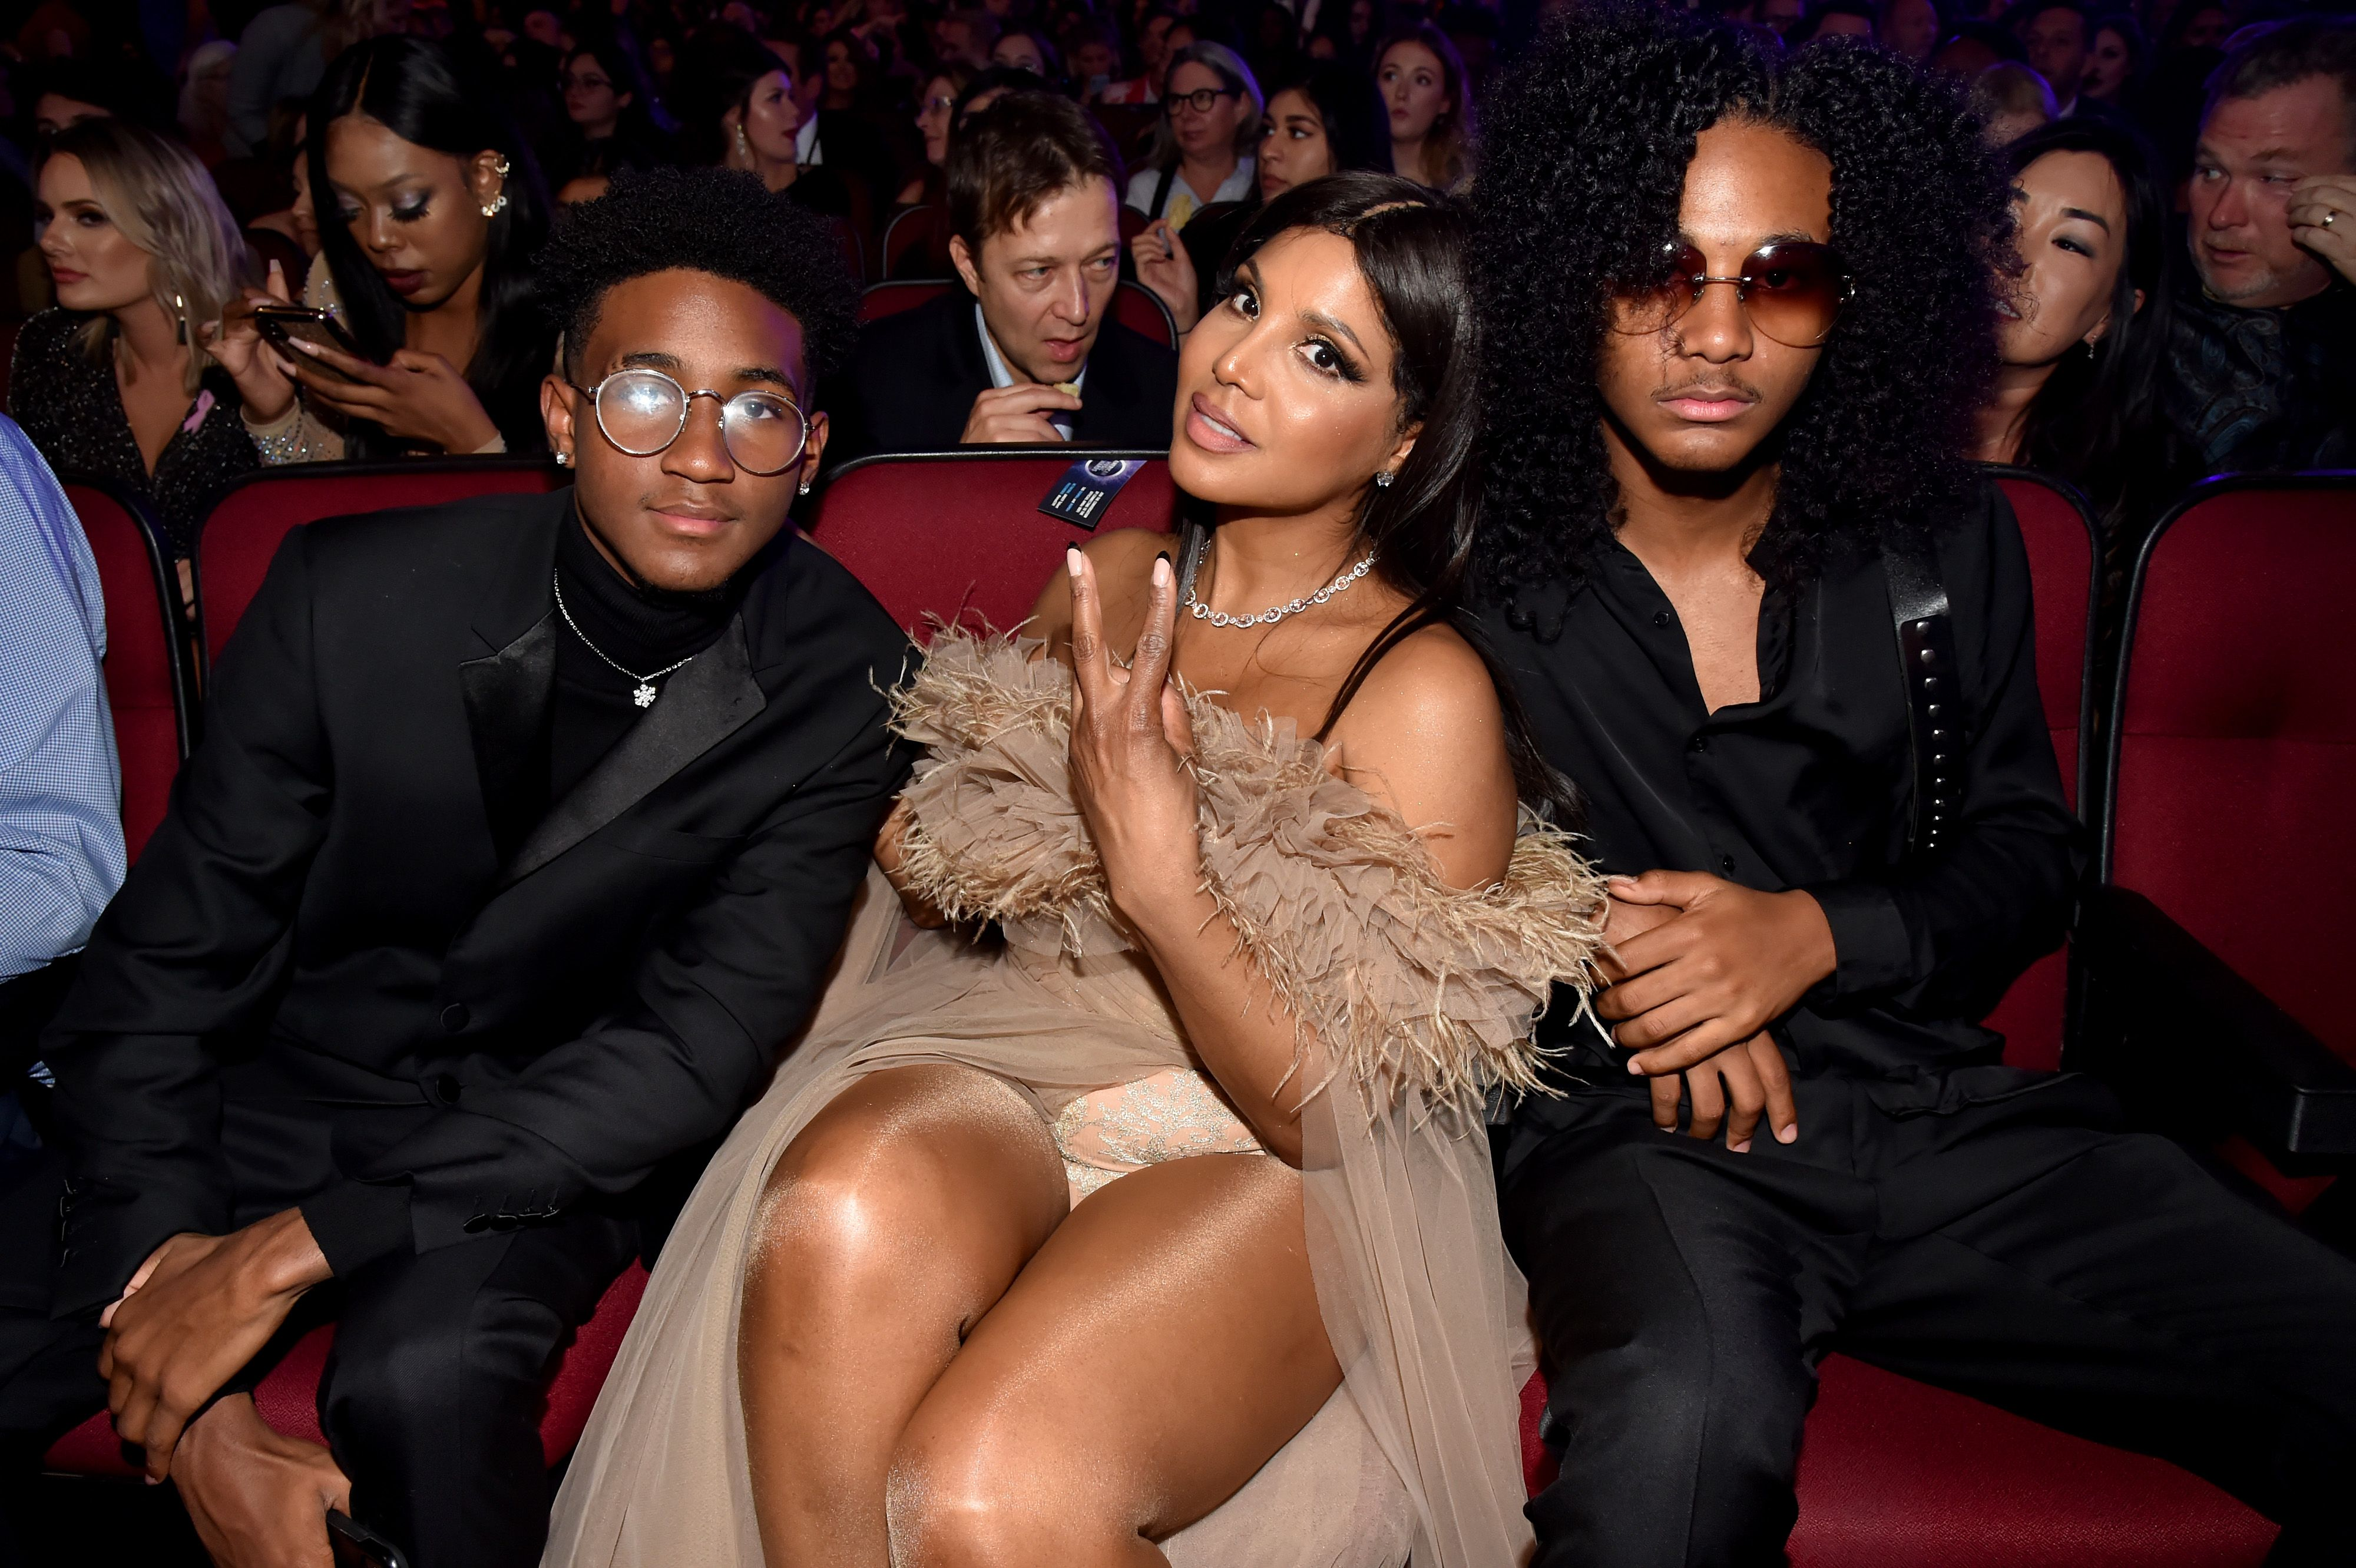 Toni Braxton and her family attend the 2019 American Music Awards at Microsoft Theater on November 24, 2019 in Los Angeles, California. | Source: Getty Images